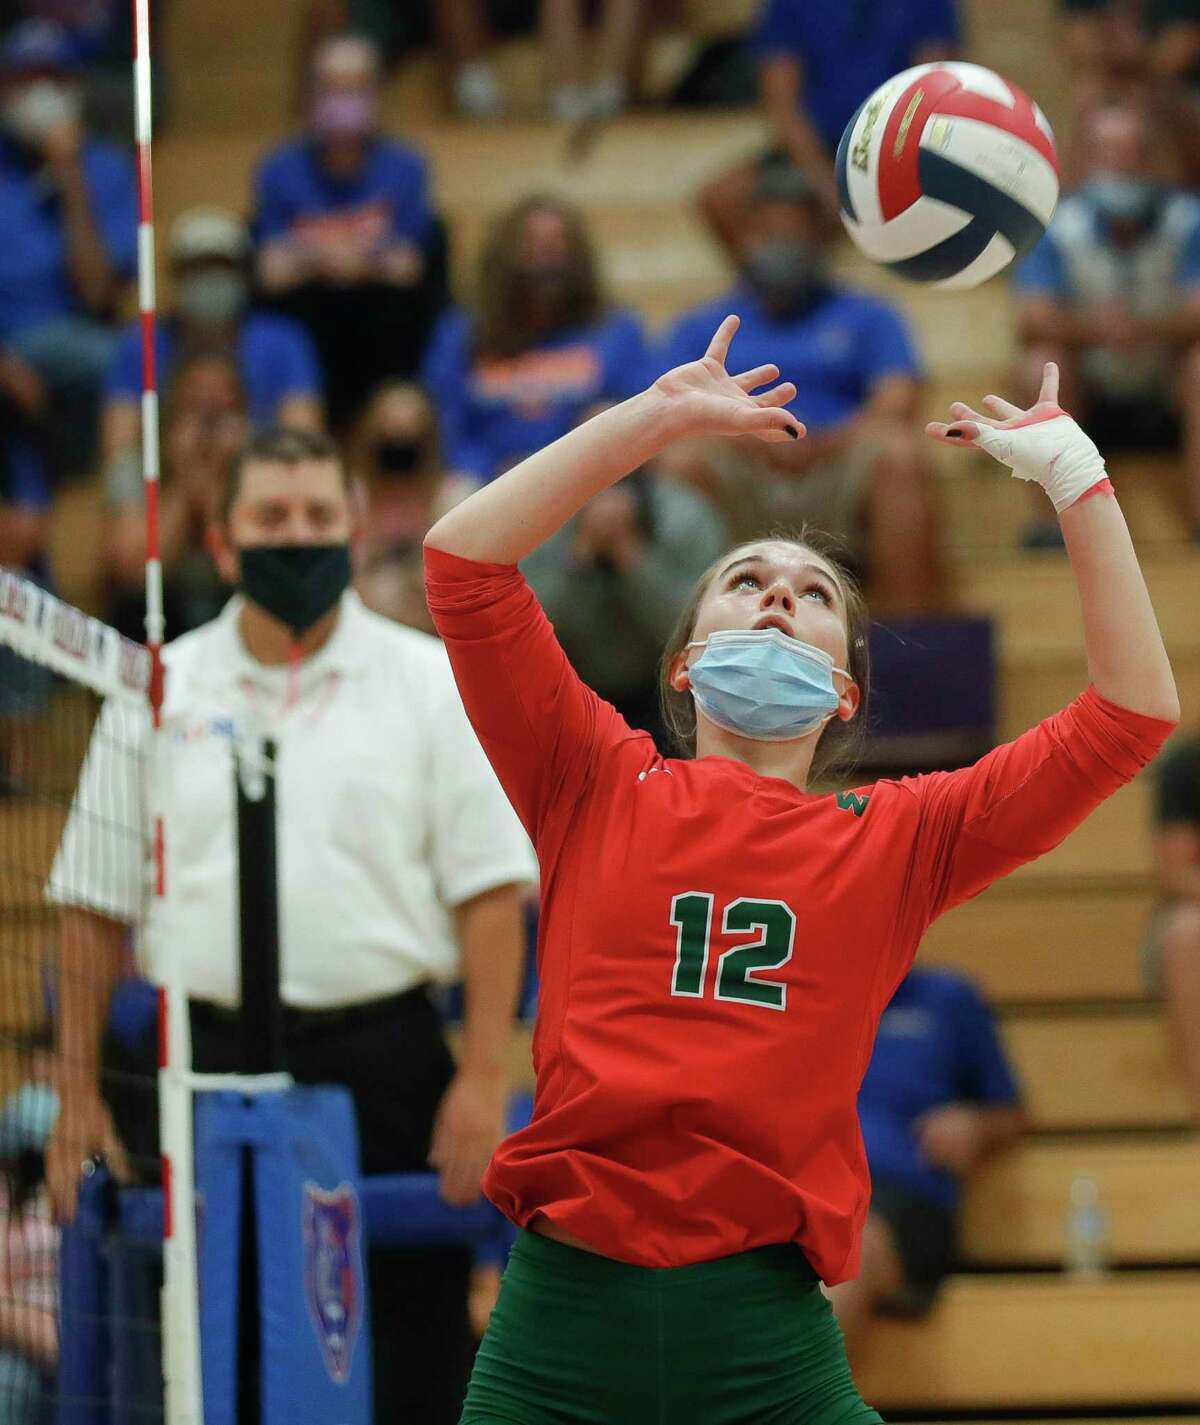 The Woodlands senior Clara Brower (13) is The Courier's Player of the Year.